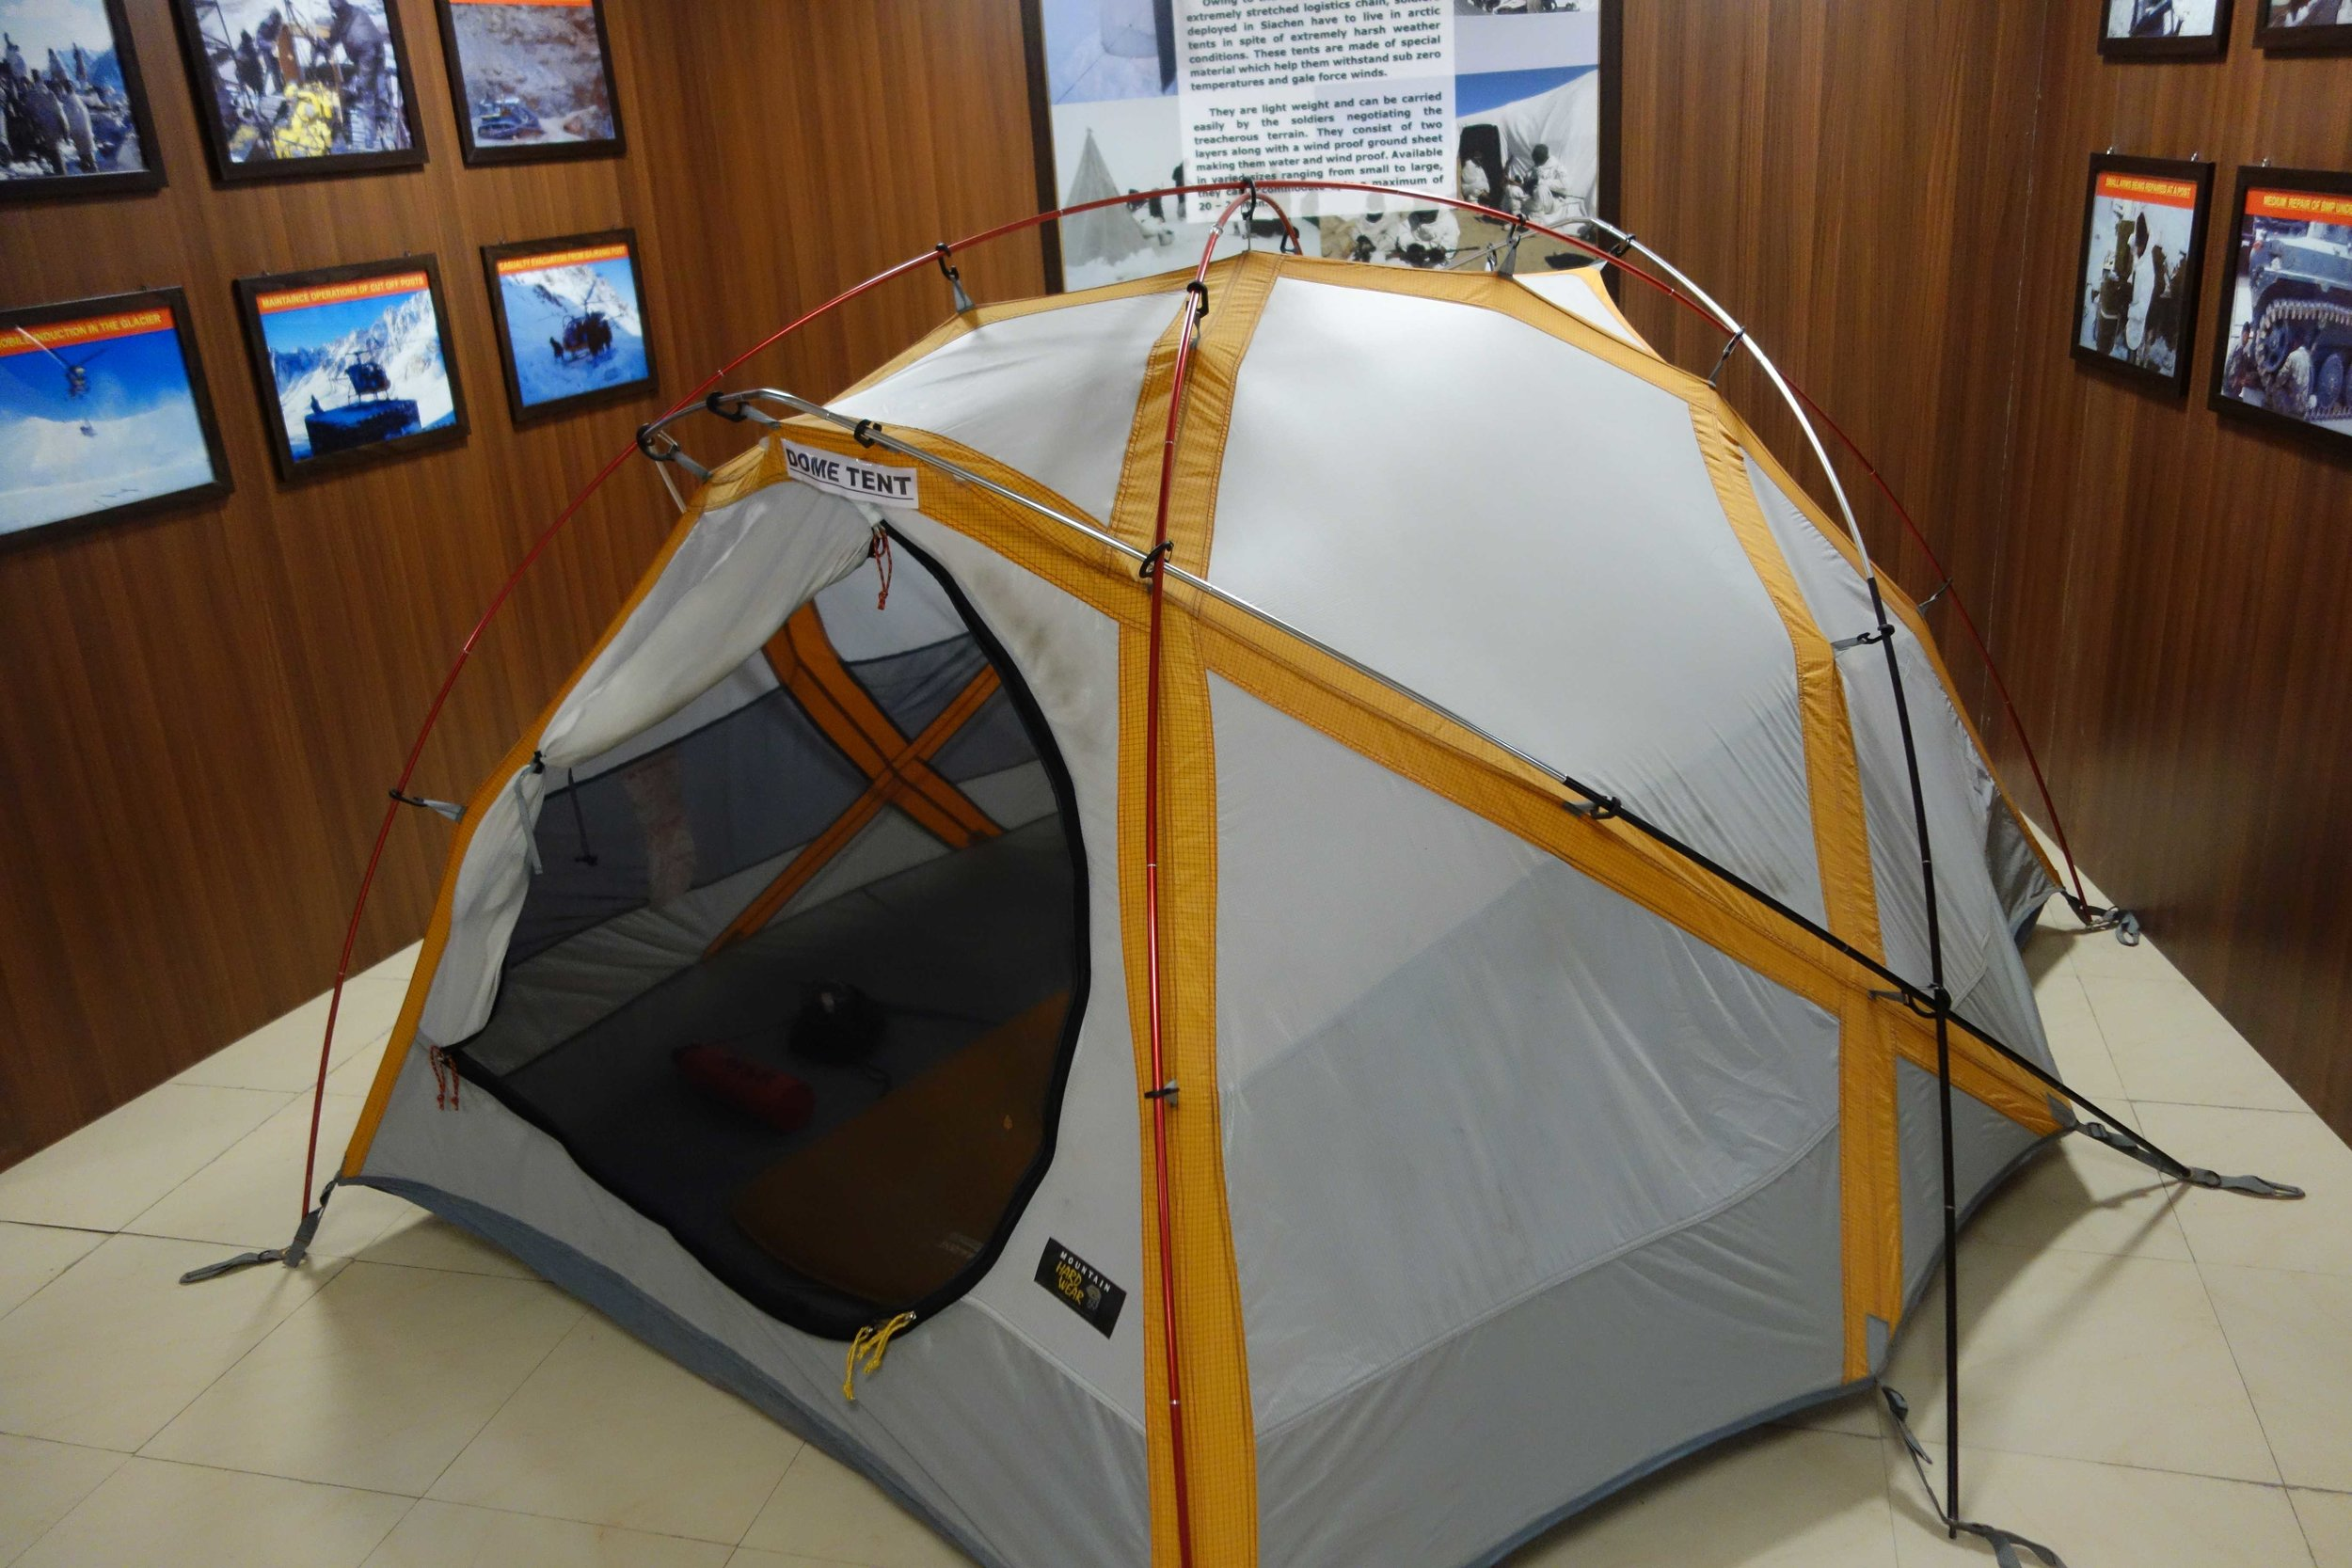 A Dome Tent